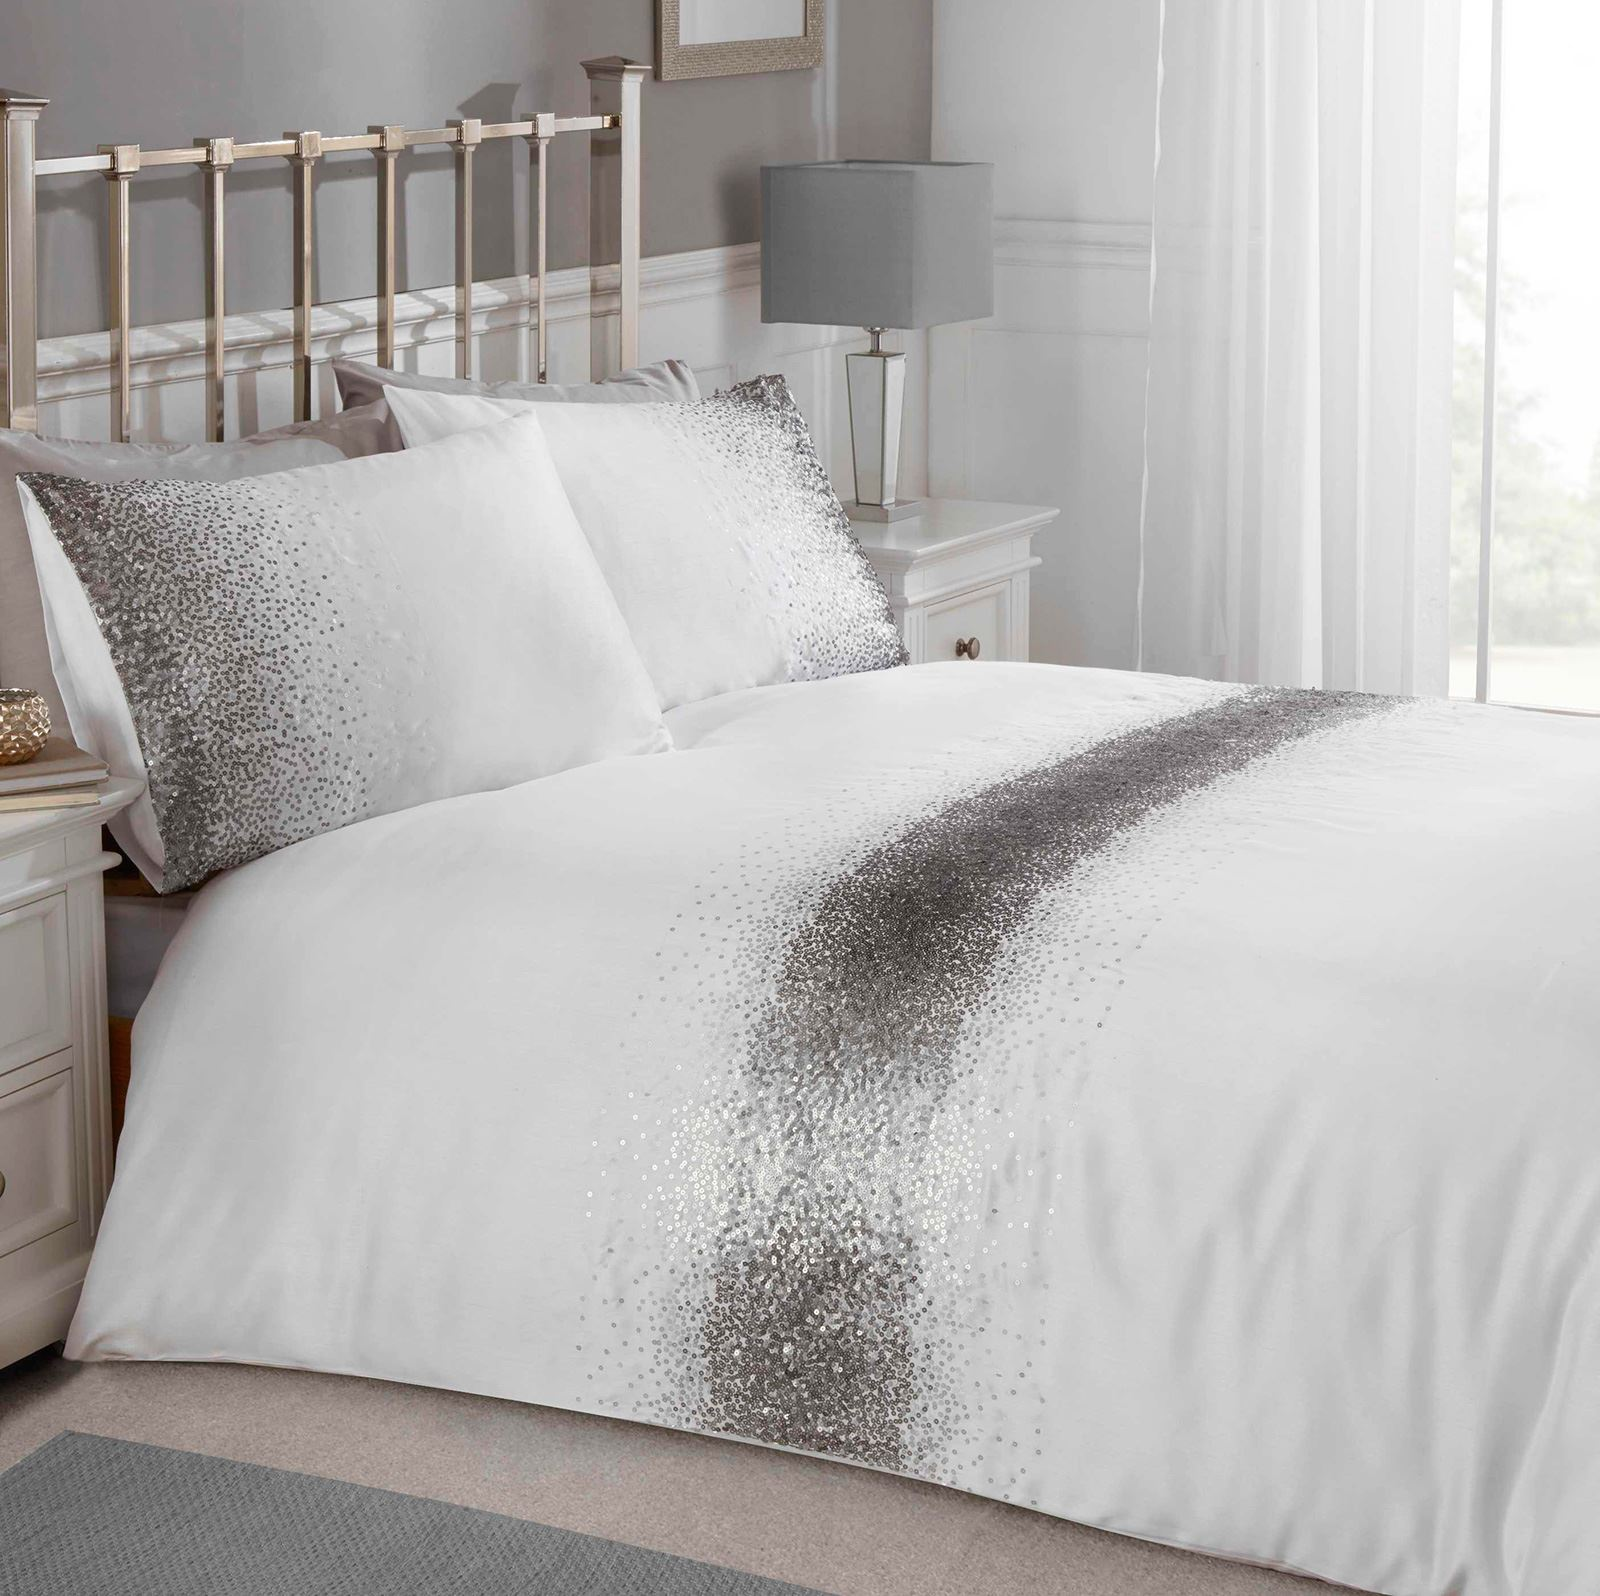 Silver Duvet Cover Details About Shimmer Sequin Double Duvet Cover Set White Silver Bedding Adults New